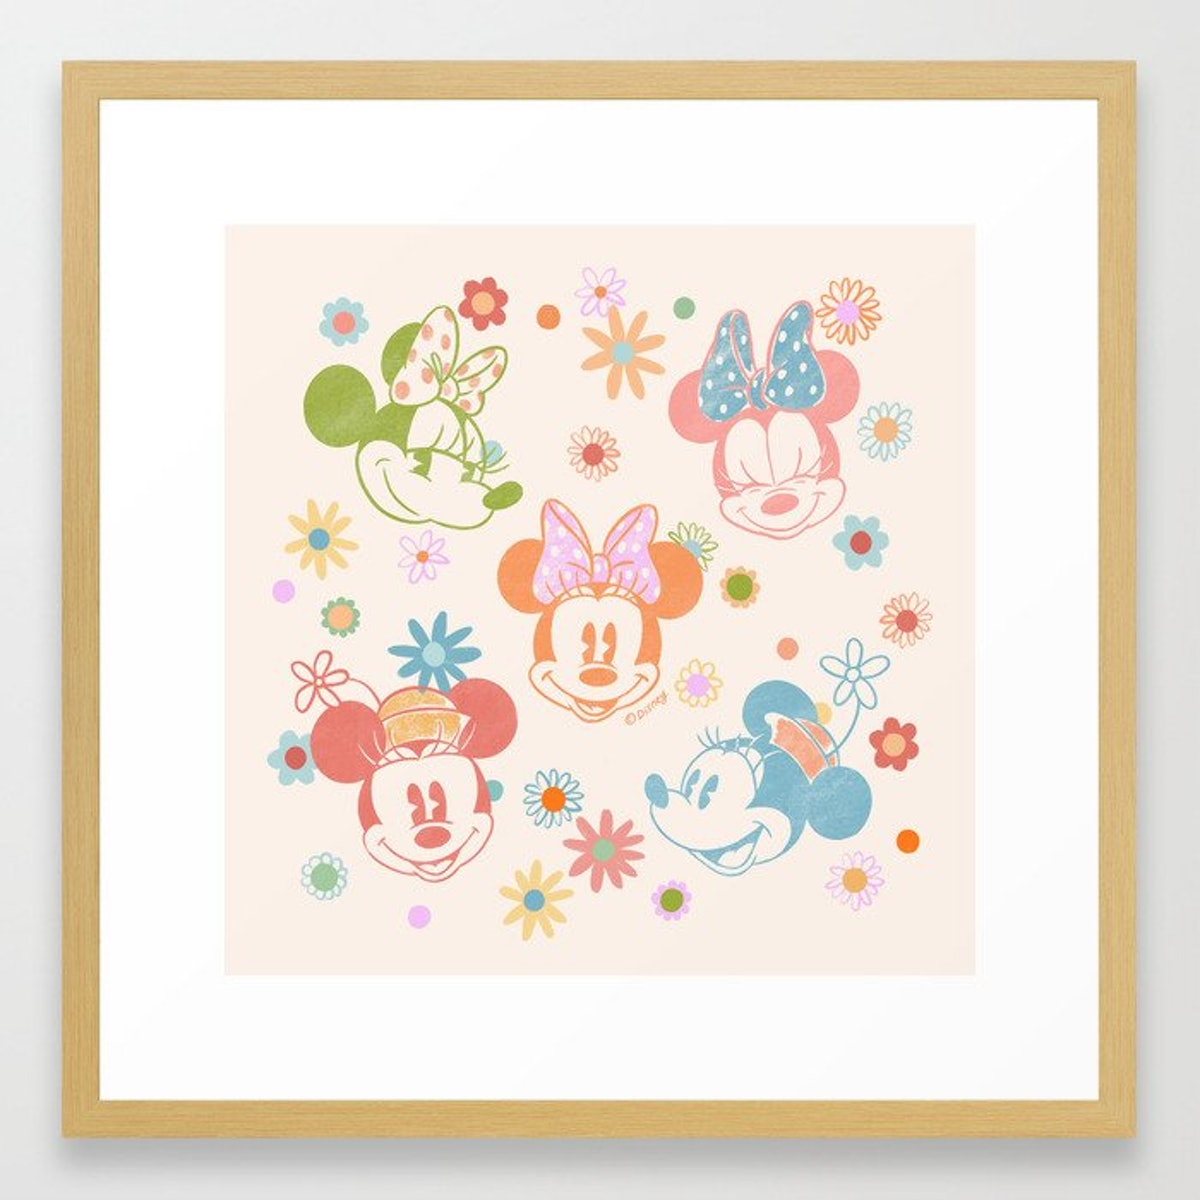 This Society6 x Disney Minnie Mouse Collection framed art is great dorm decor.